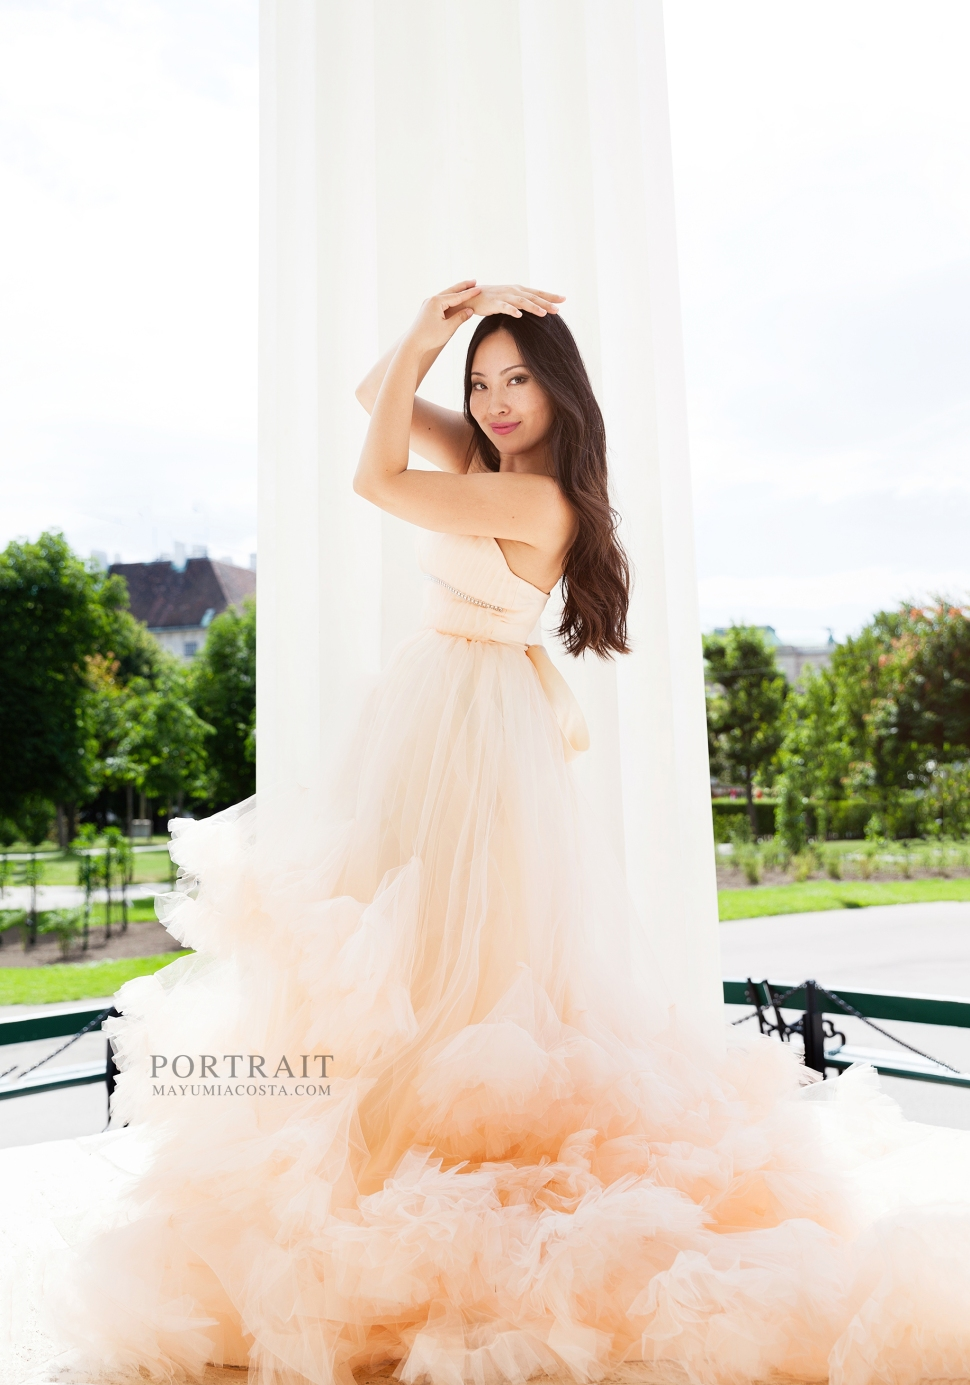 Glamour Photographer, destination portrait, Portraits in Vienna, Sacramento Photographer, Sacramento Portraits, On-location Portraits, dream photo shoot, Mayumi Acosta Photography, Top Sacramento Photographer, Luxury portrait studio, Best Sacramento Portrait